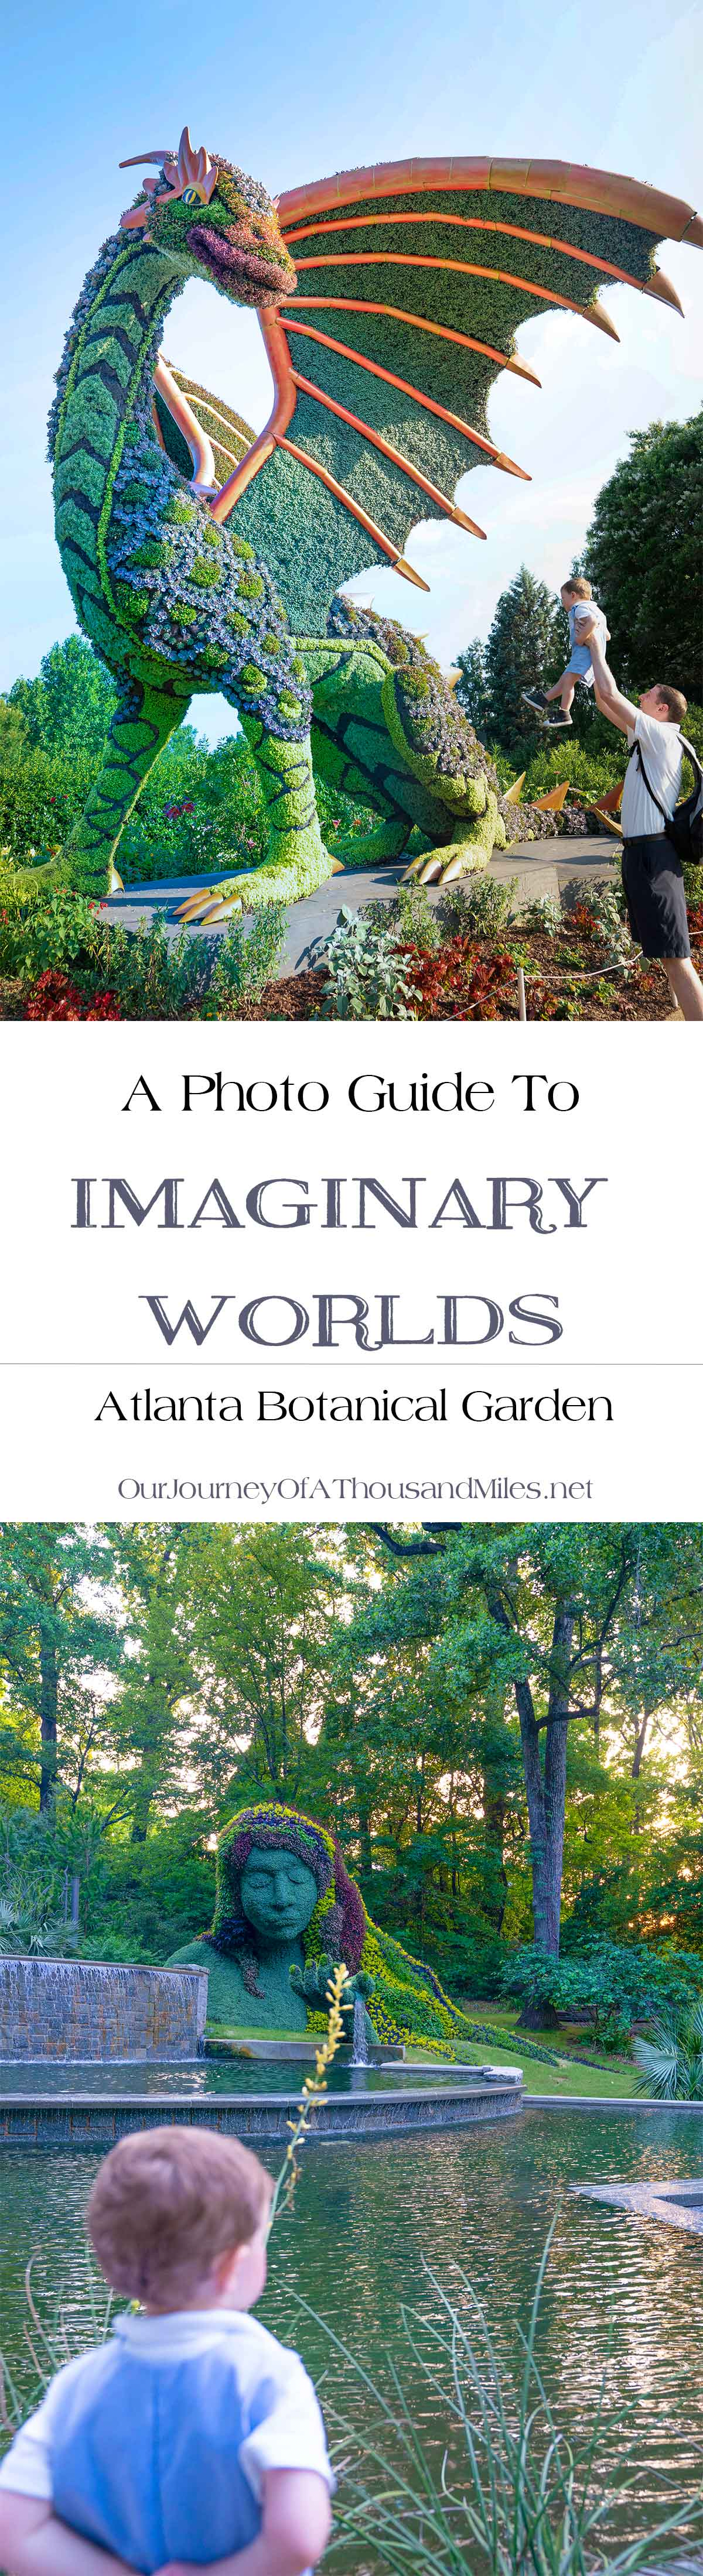 A-Photo-Guide-To-Imaginary-Worlds-At-The-Atlanta-Botanical-Garden